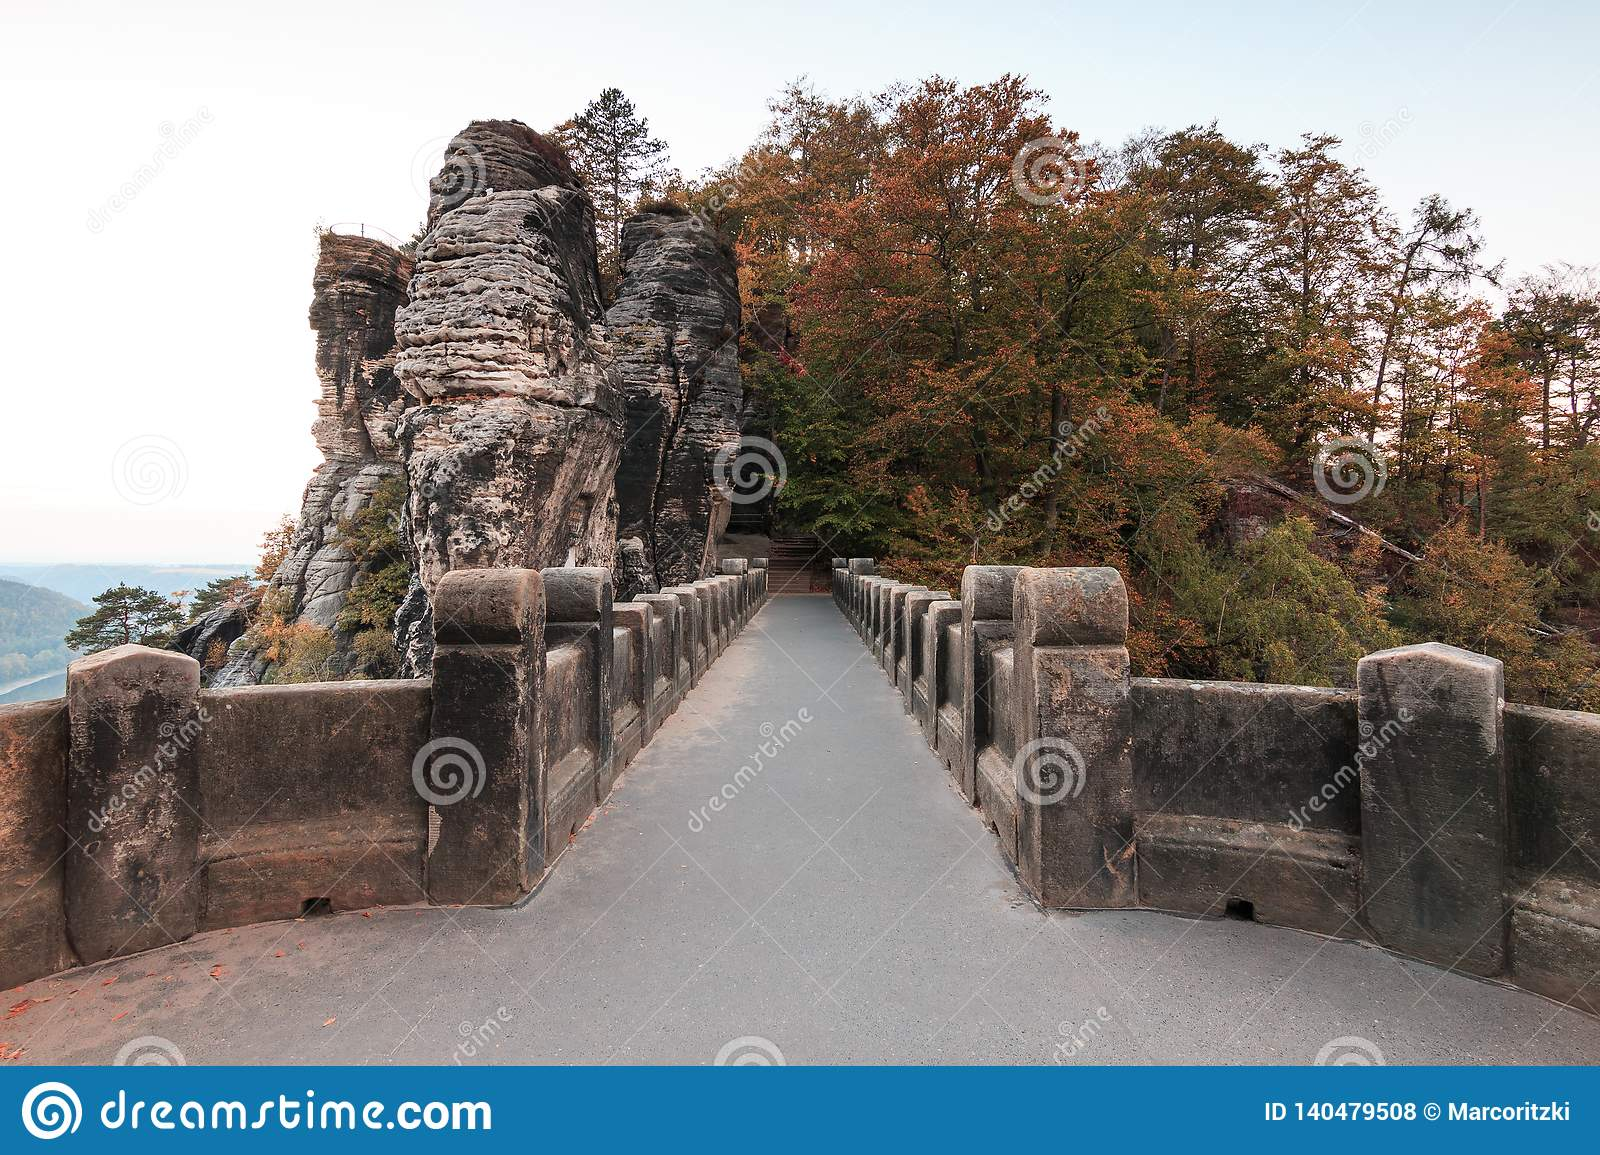 Oriented view on the Bastei bridge with trees and rocks in autumn mood